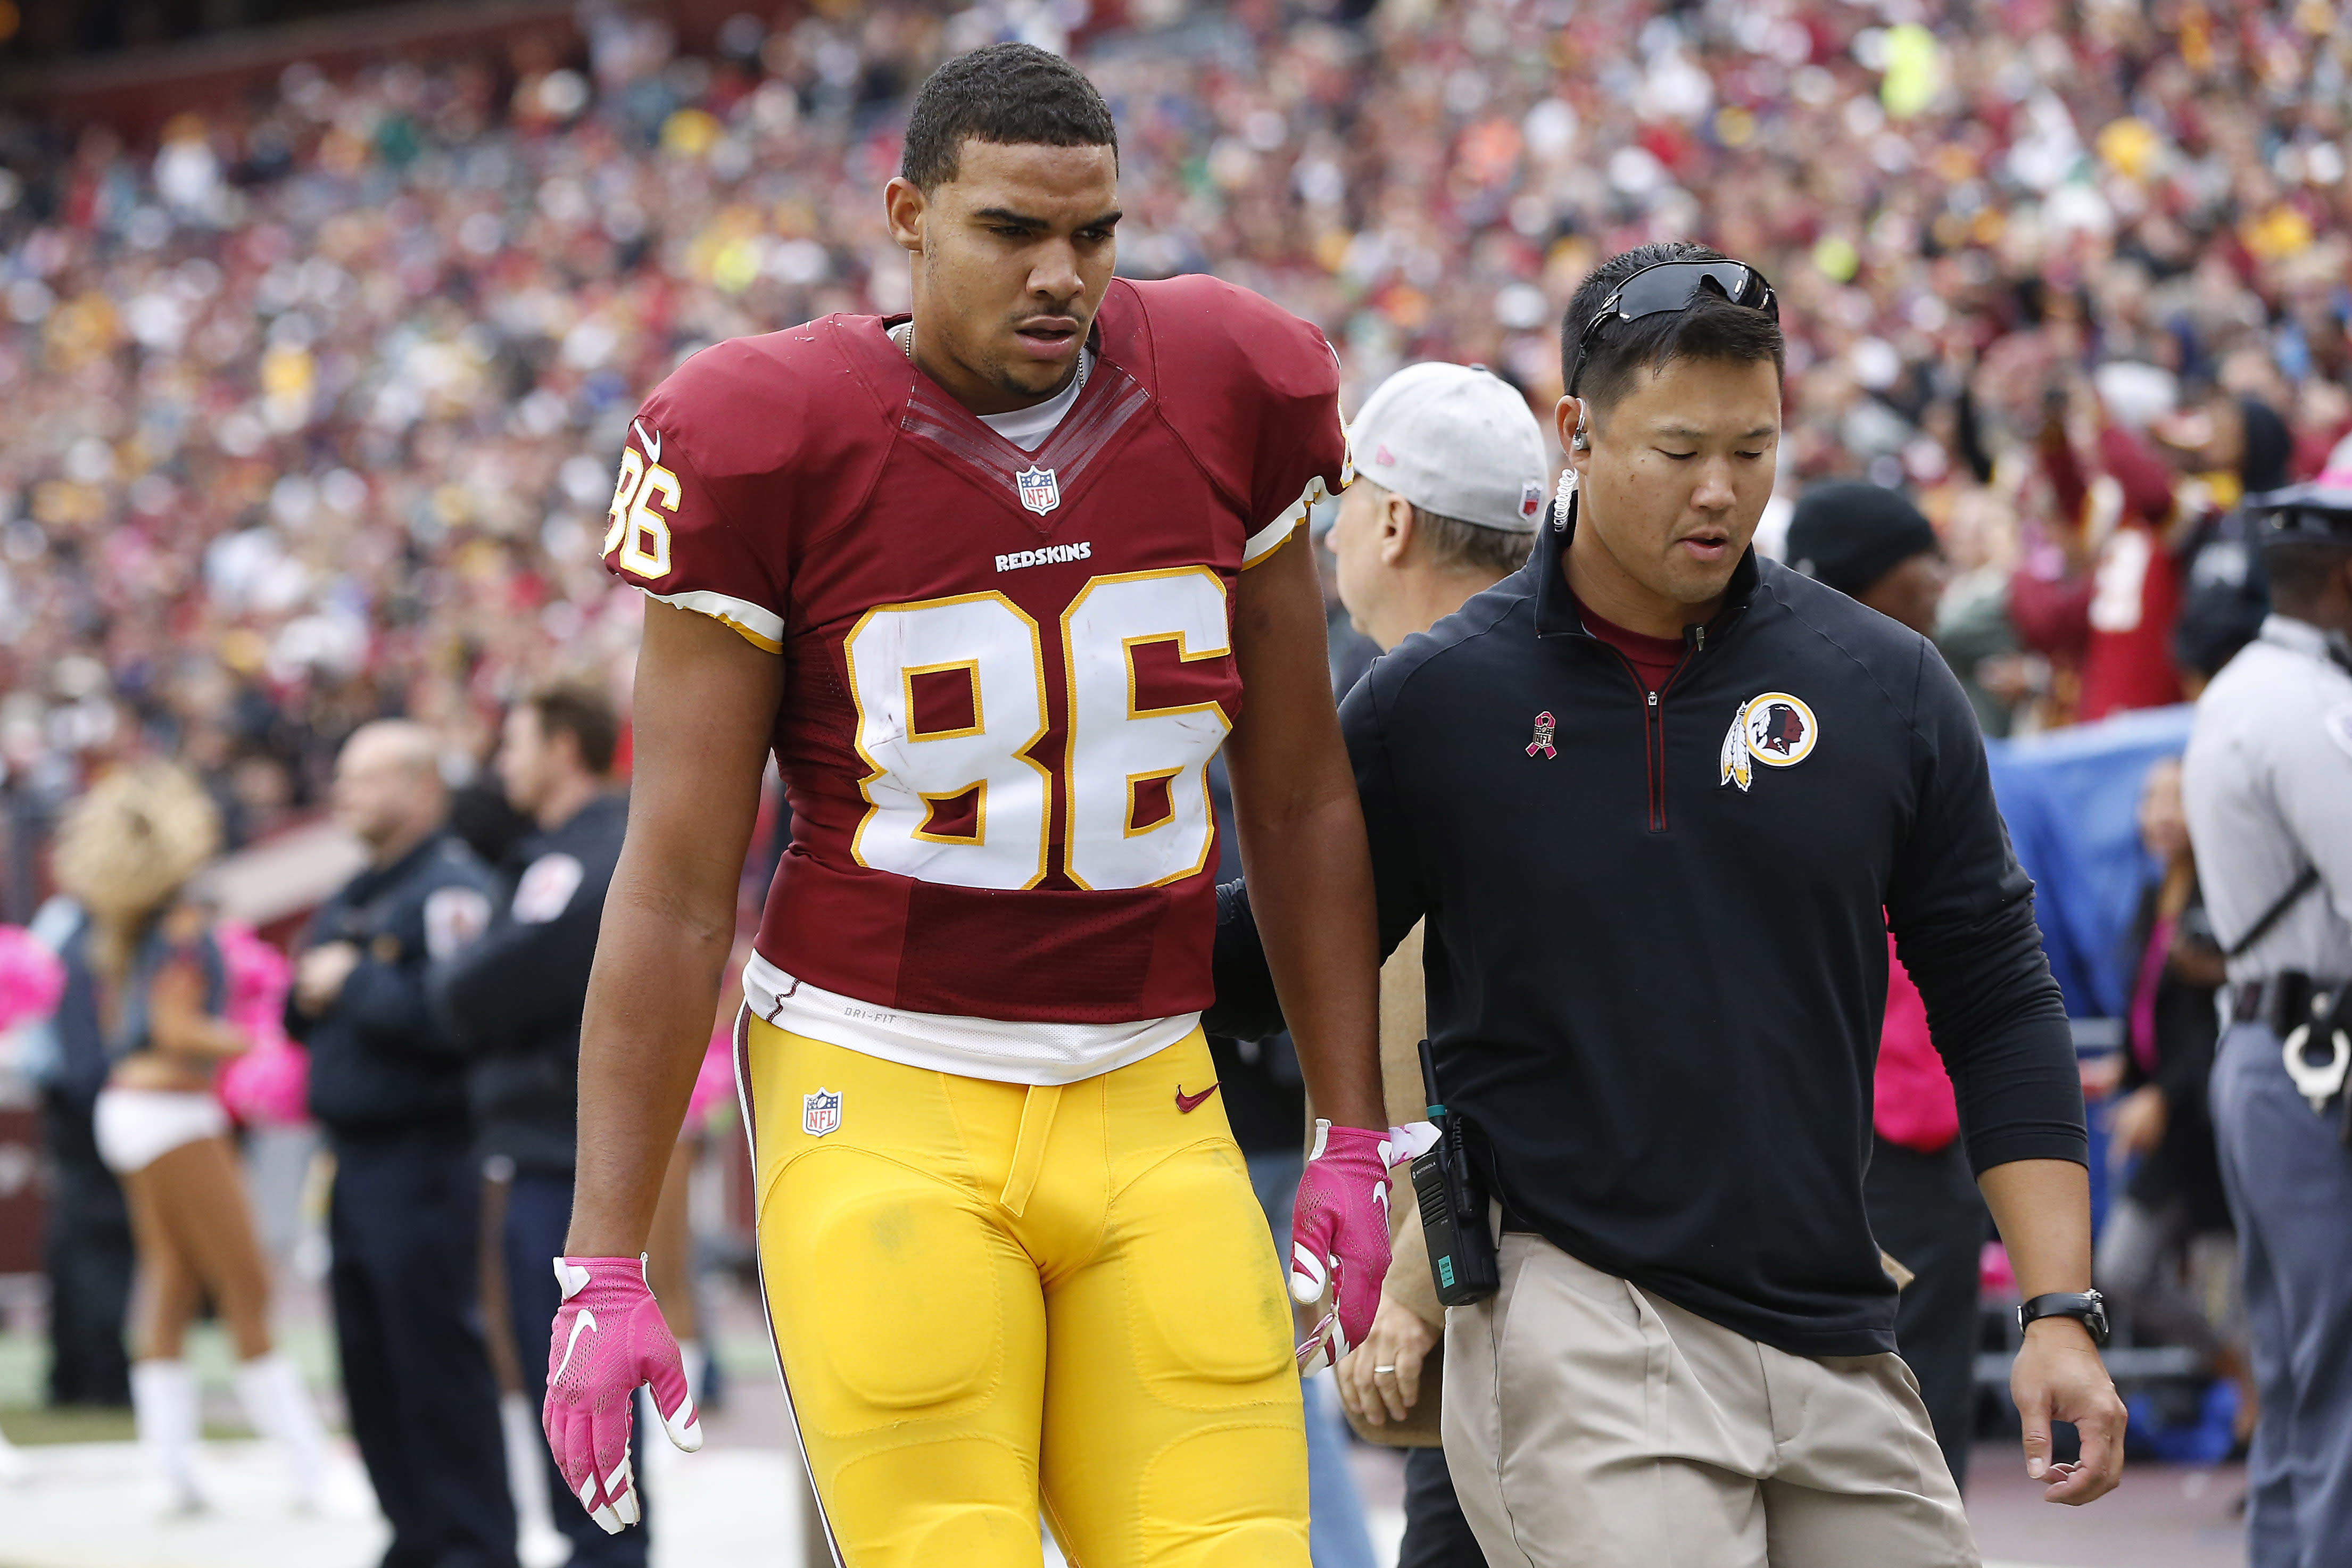 After concussion, status for Jordan Reed remains unclear